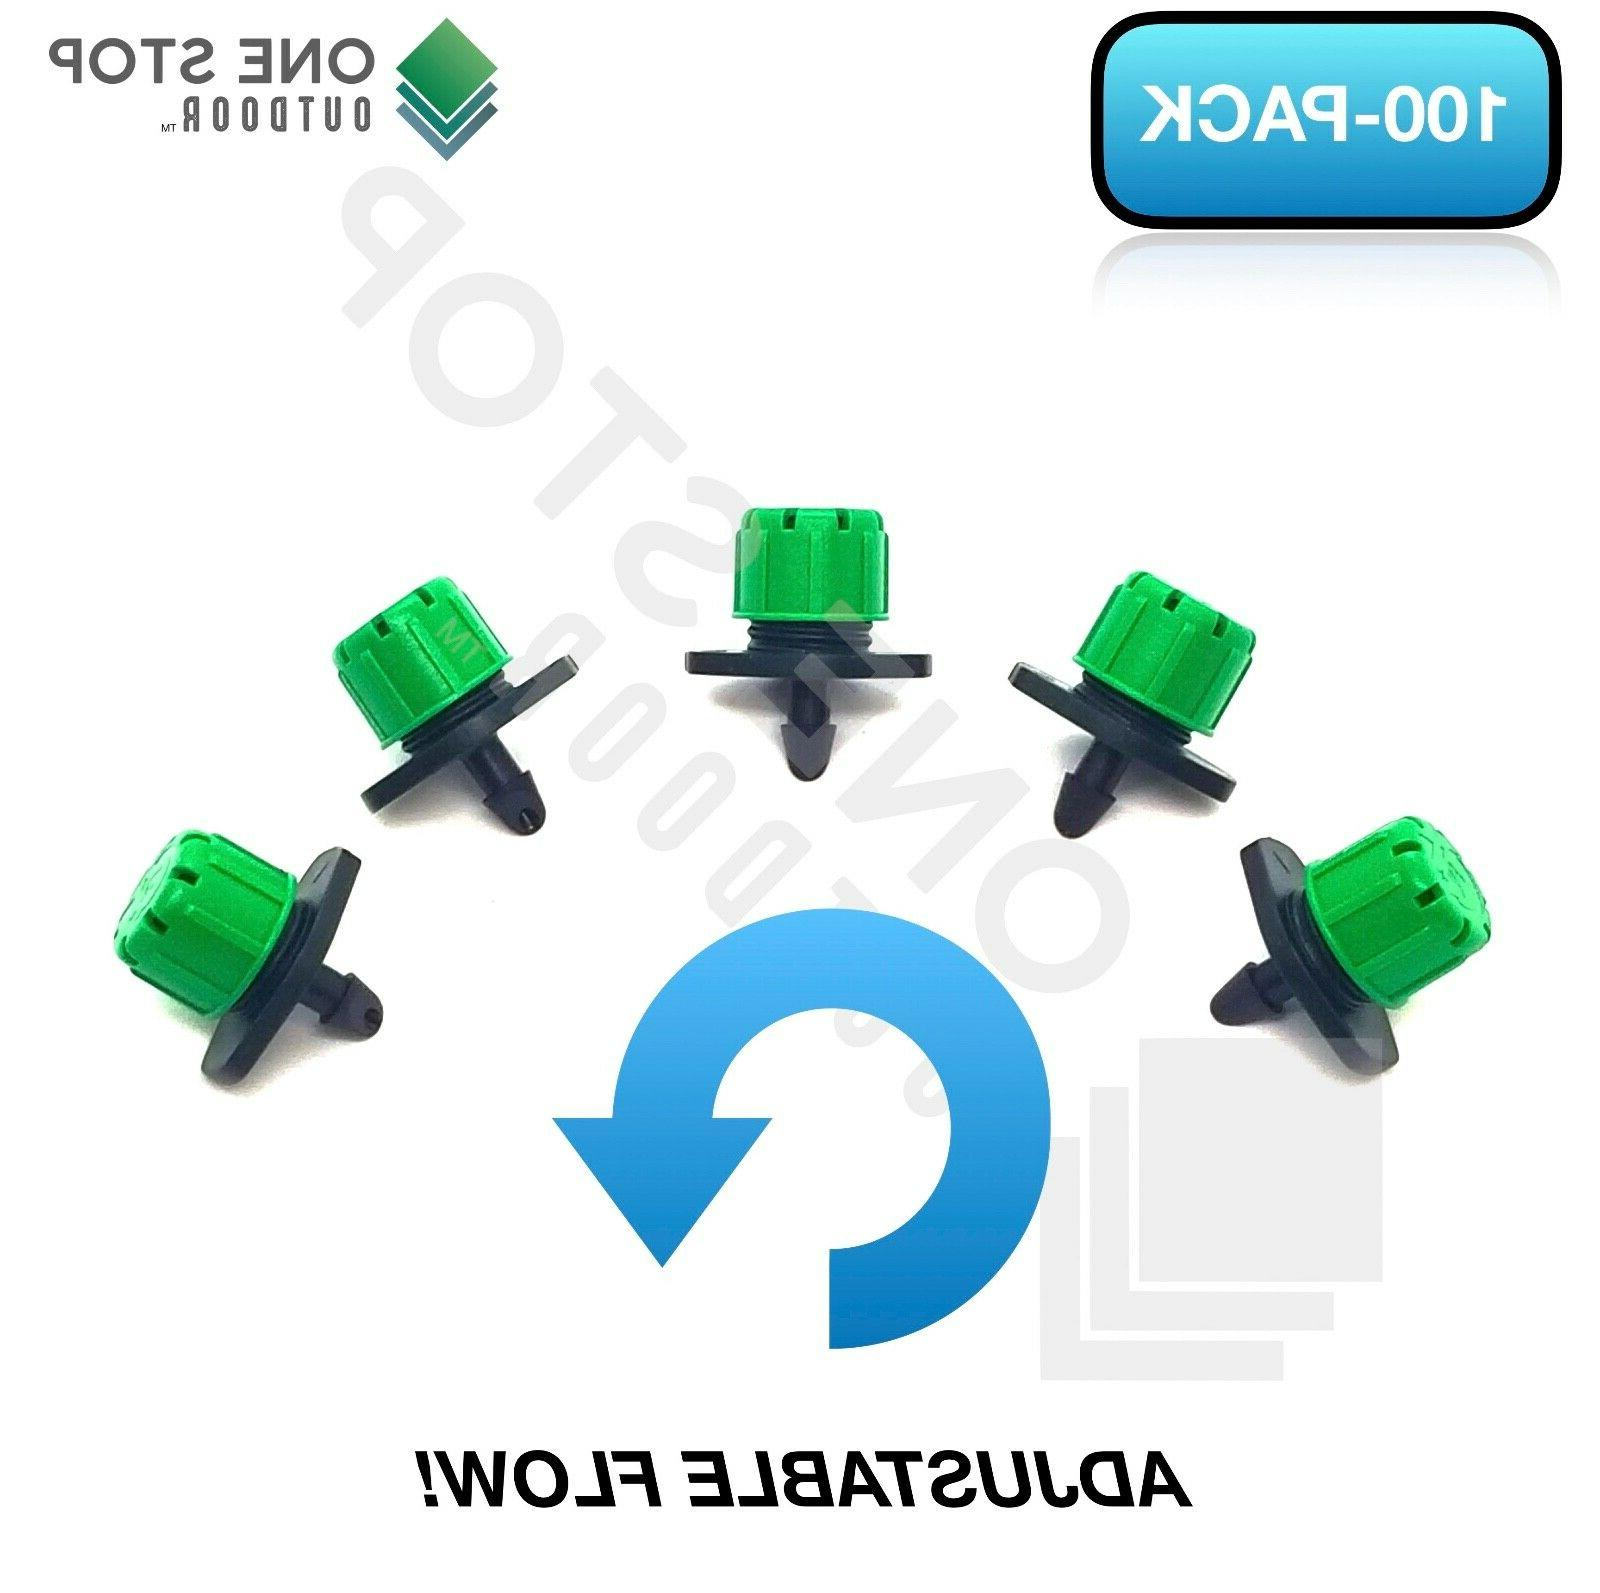 100Pc Adjustable Emitter Micro Irrigation Watering